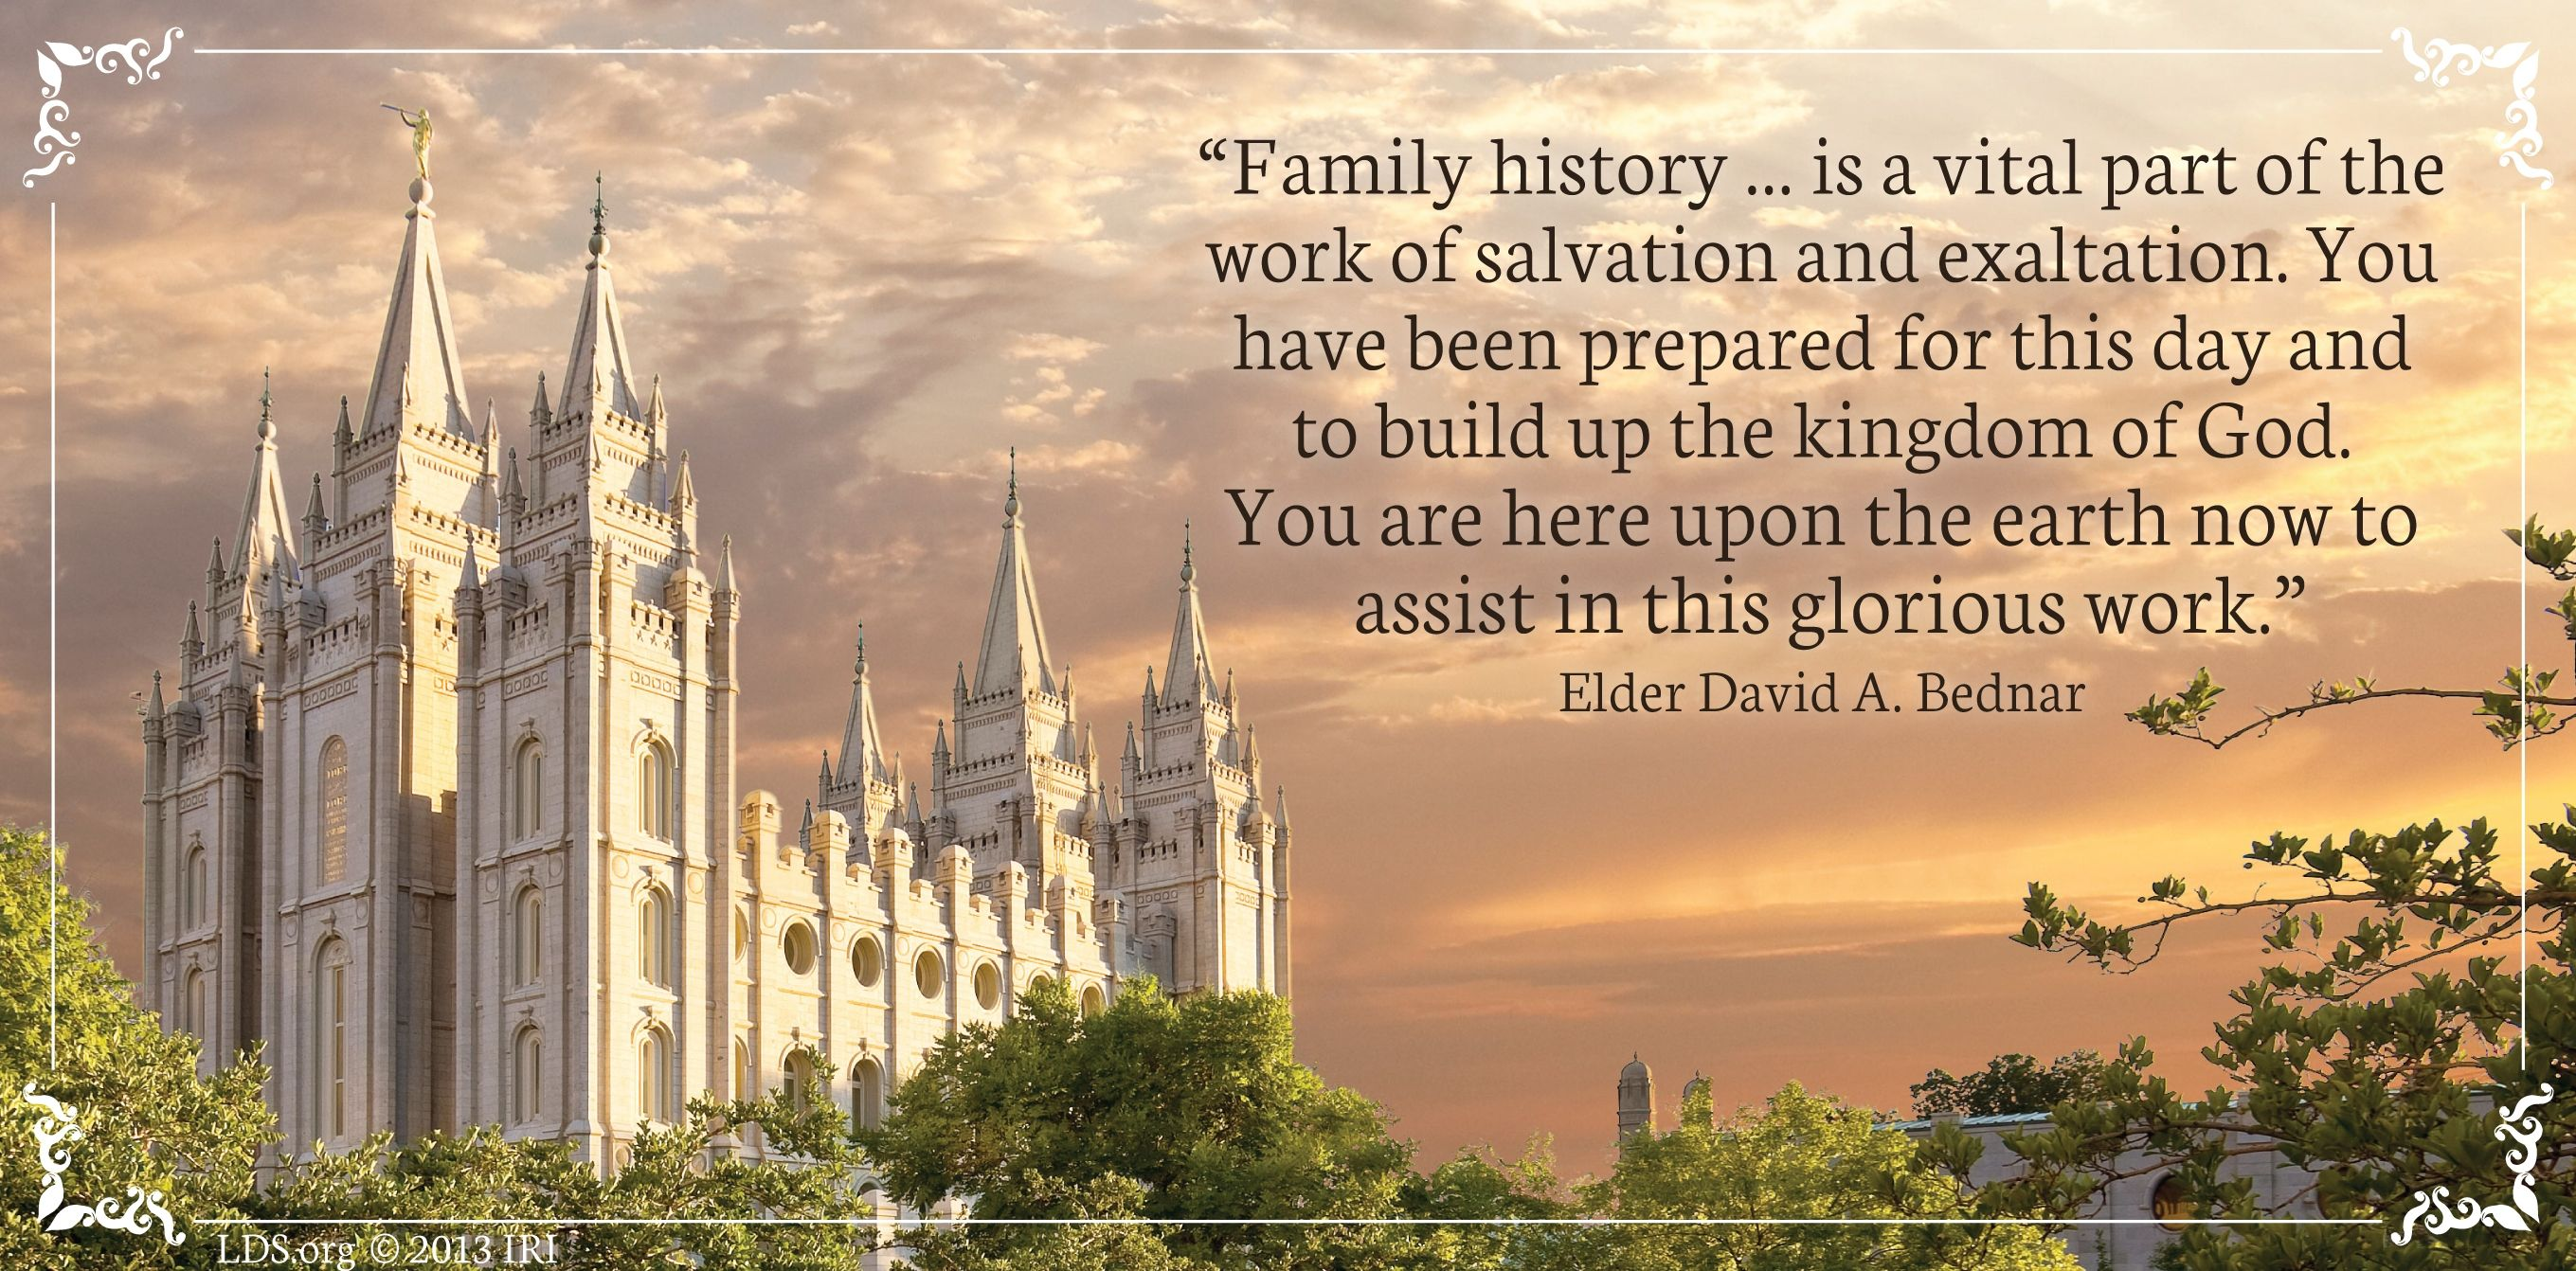 """Family history … is a vital part of the work of salvation and exaltation. You have been prepared for this day and to build up the kingdom of God. You are here upon the earth now to assist in this glorious work.""—Elder David A. Bednar, ""The Hearts of the Children Shall Turn"""